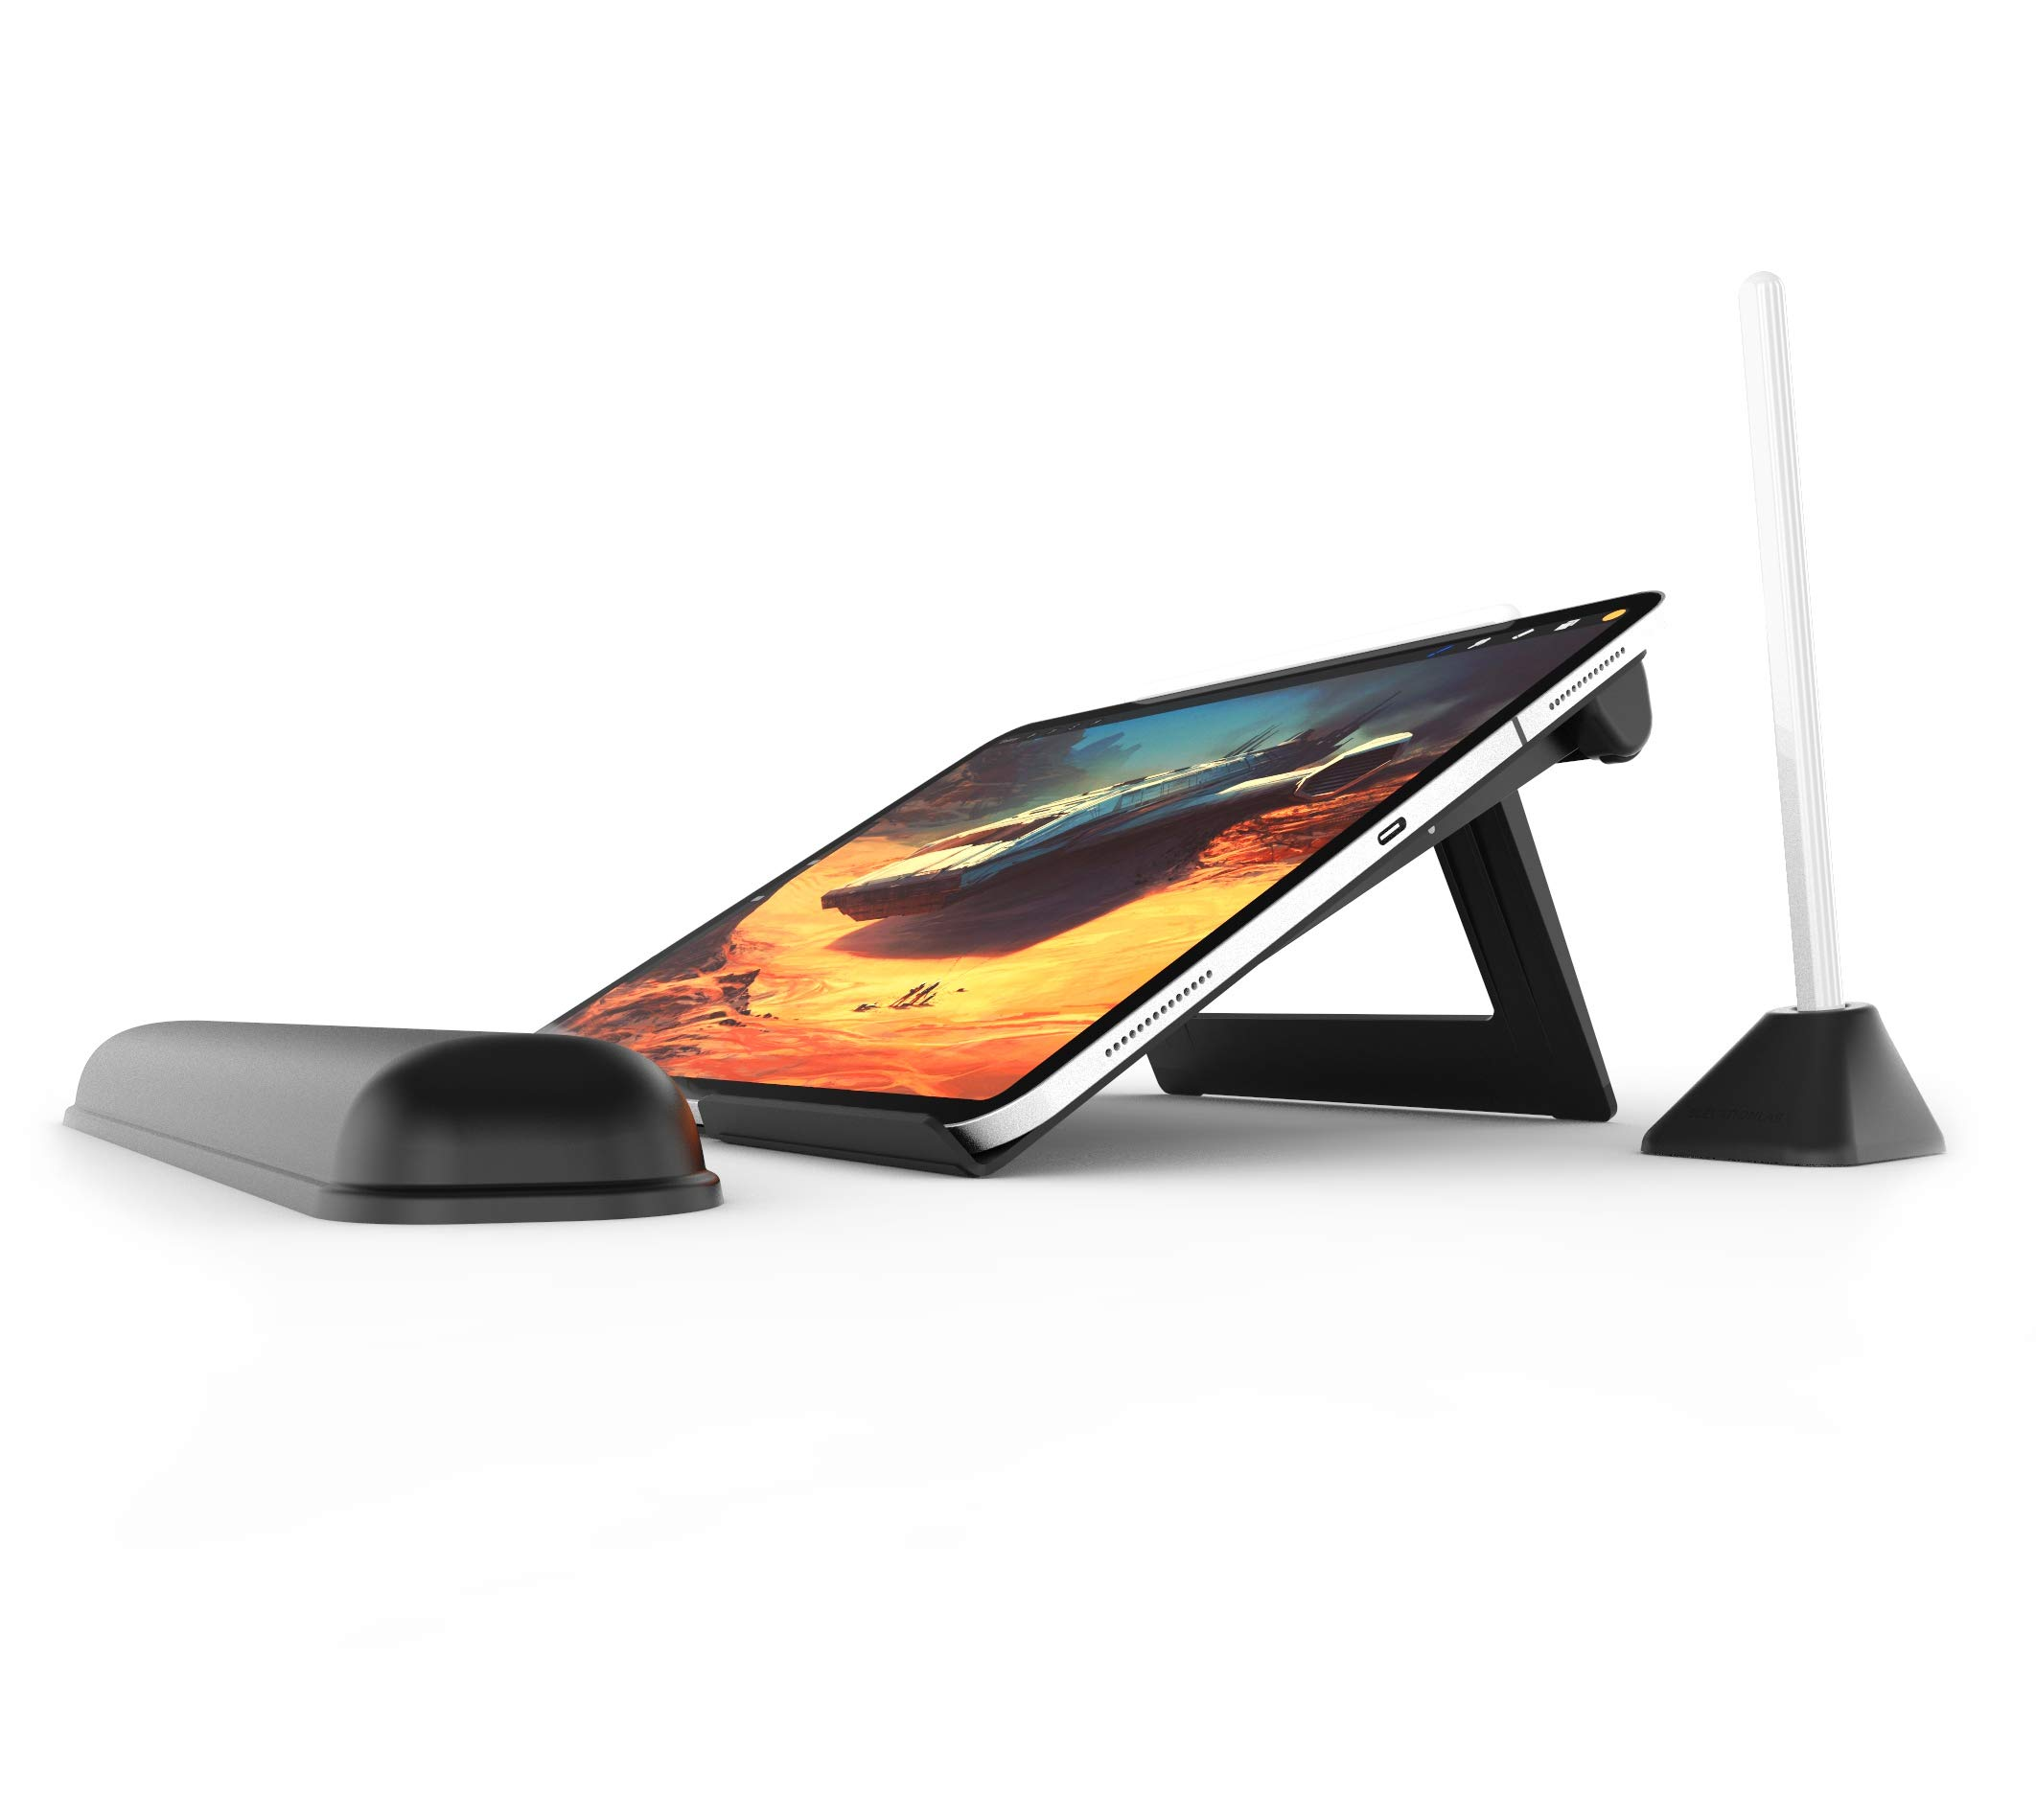 Elevation Lab DraftTable Kit for iPad Pro - Adjustable Stand for iPad Pro & Pencil, Designed for Professionals and Designers. Includes PencilStand & ArmRest by Elevation Lab